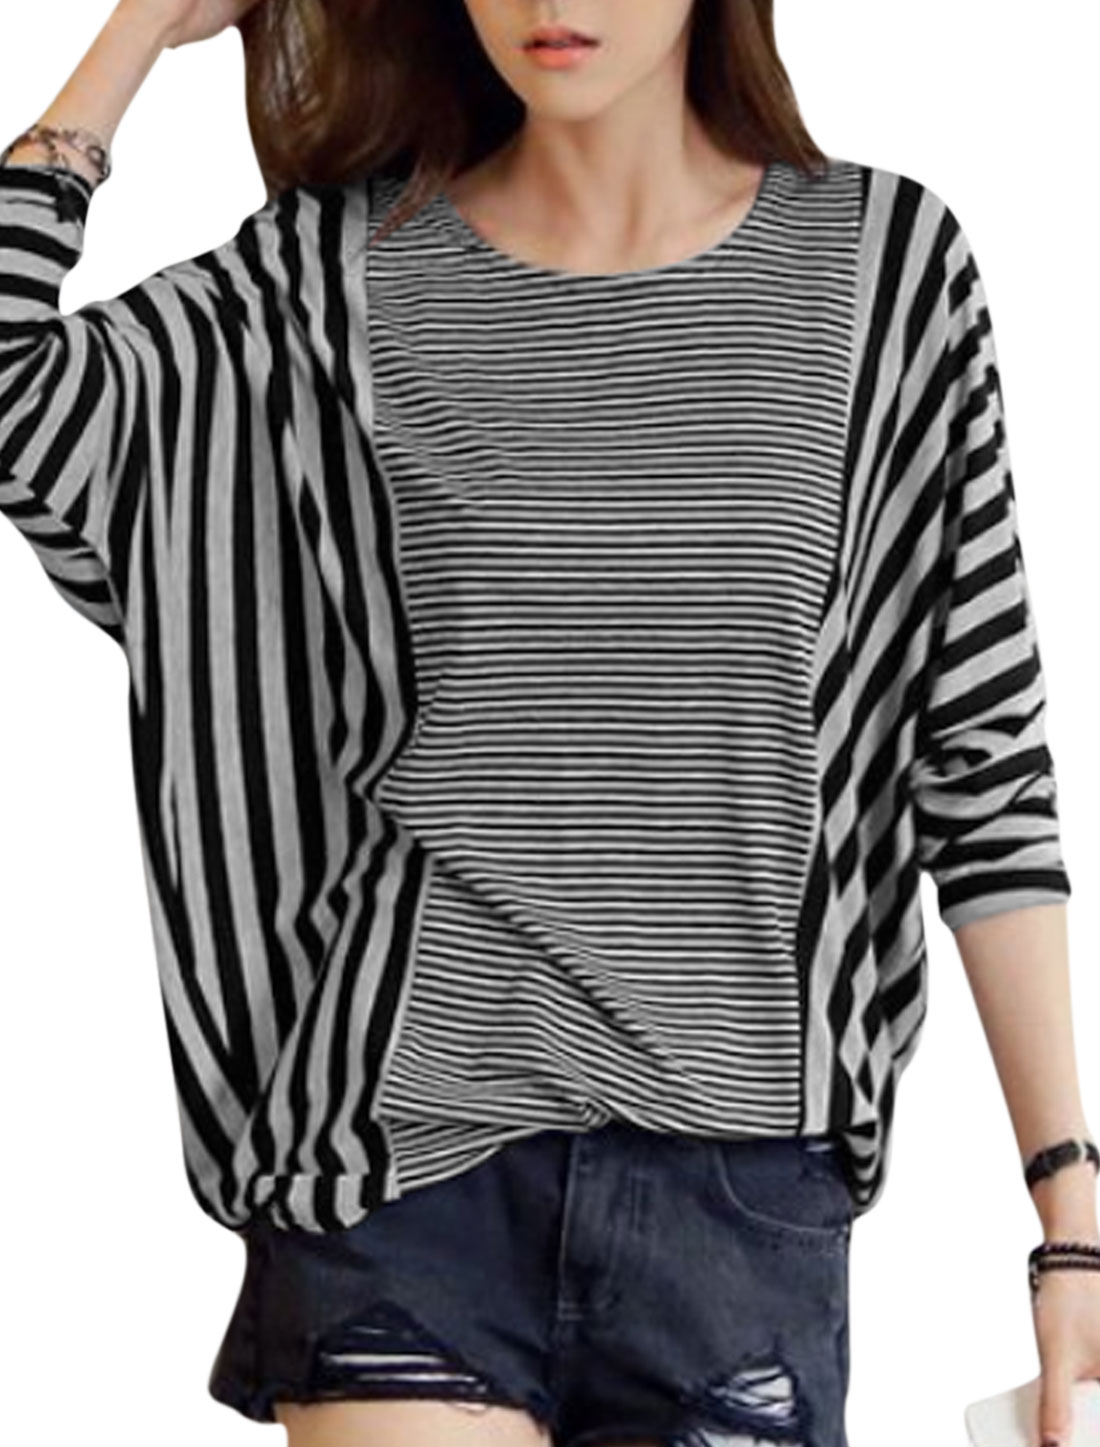 Ladies Black Gray Stripes Long Batwing Sleeves Leisure Tunic Top S